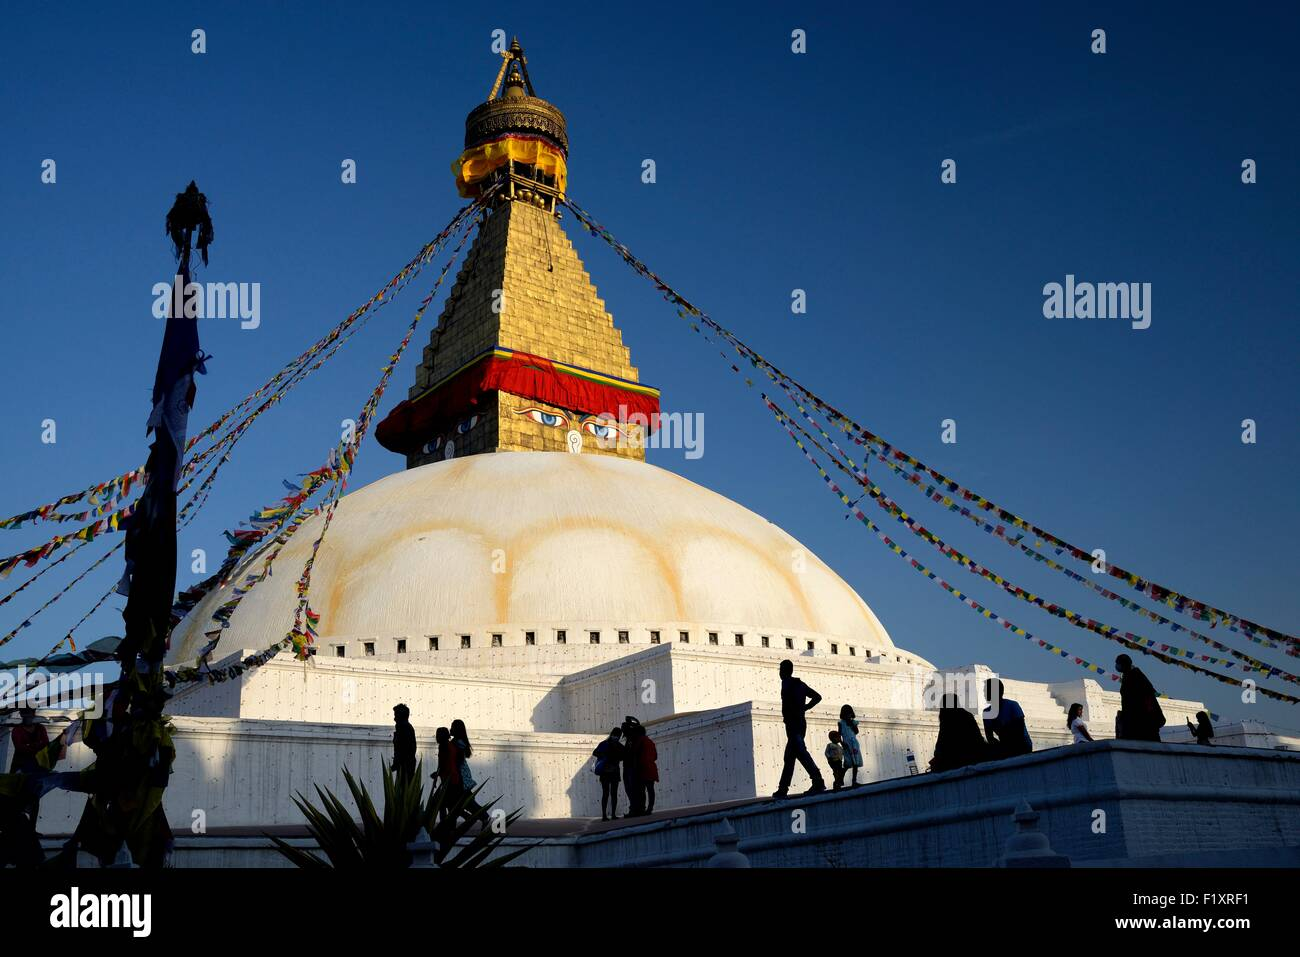 Nepal, Kathmandu valley, Bodnath listed as World Heritage by UNESCO, silhouette in front of the Bodnath stupa - Stock Image